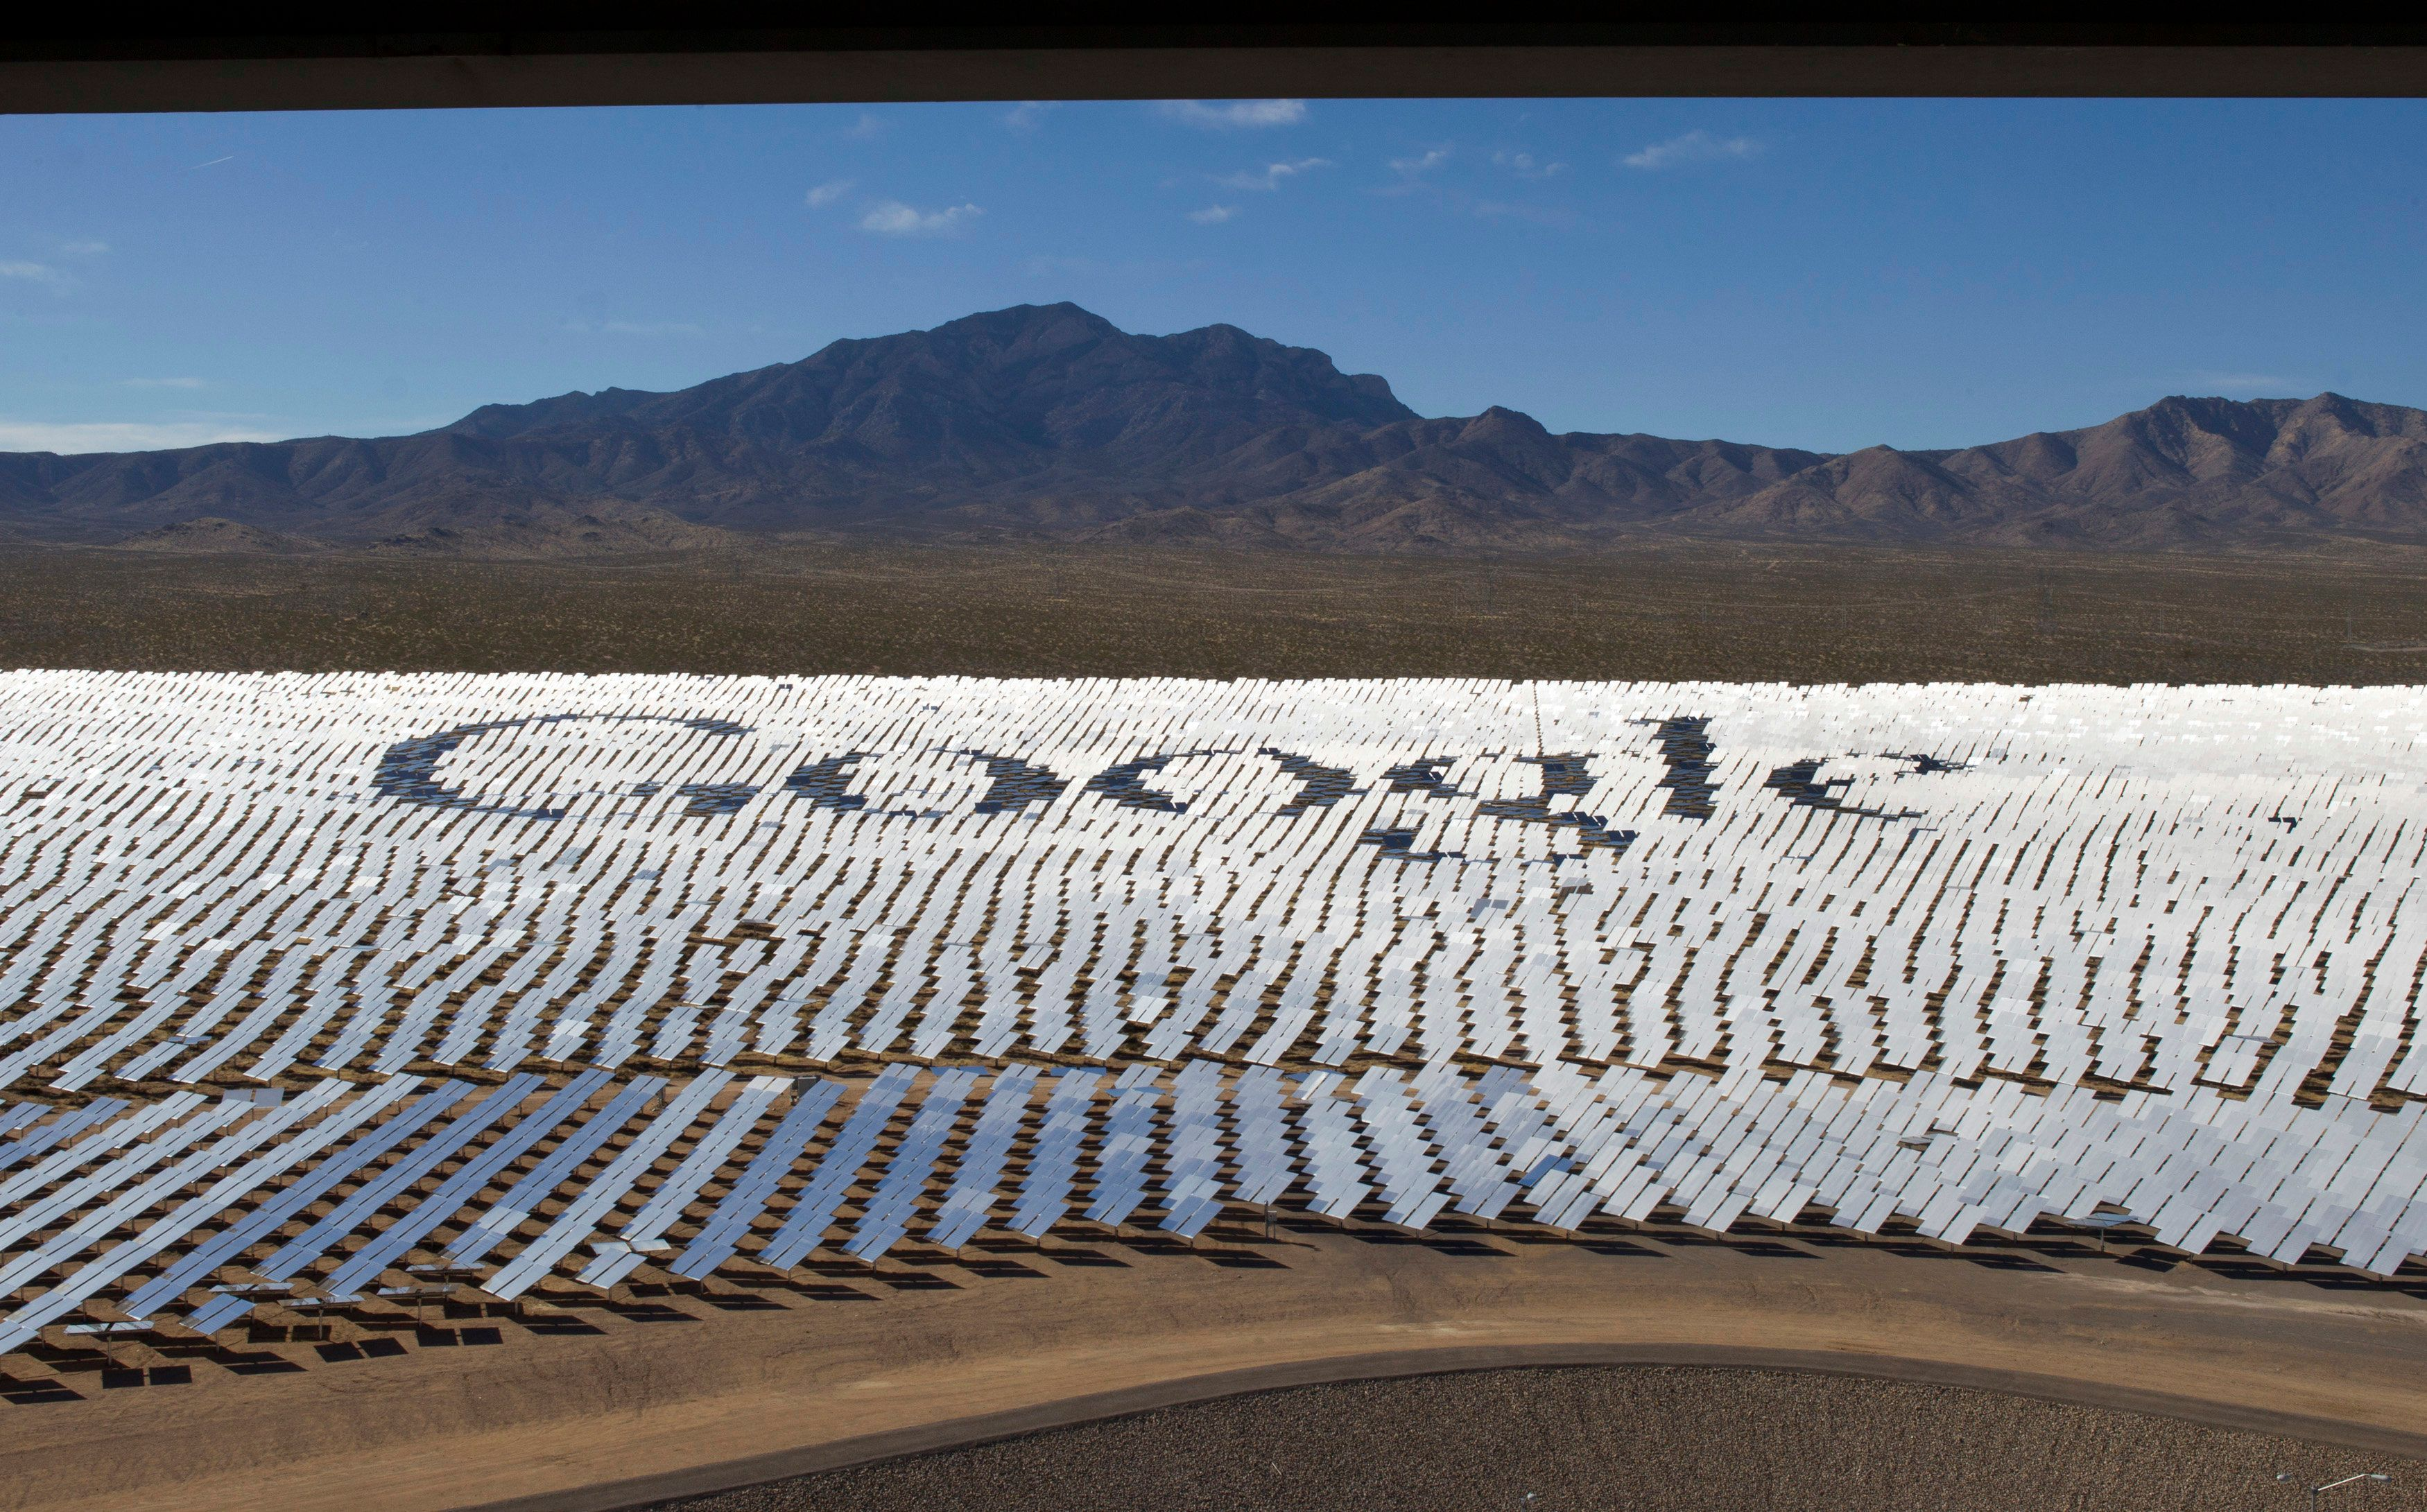 The Google logo is spelled out in heliostats (mirrors that track the sun and reflect the sunlight onto a central receiving point) during a tour of the Ivanpah Solar Electric Generating System in the Mojave Desert near the California-Nevada border February 13, 2014. The project, a partnership of NRG, BrightSource, Google and Bechtel, is the world's largest solar thermal facility and uses 347,000 sun-facing mirrors to produce 392 Megawatts of electricity, enough energy to power more than 140,000 homes. REUTERS/Steve Marcus (UNITED STATES - Tags: ENERGY SCIENCE TECHNOLOGY BUSINESS TPX IMAGES OF THE DAY LOGO)